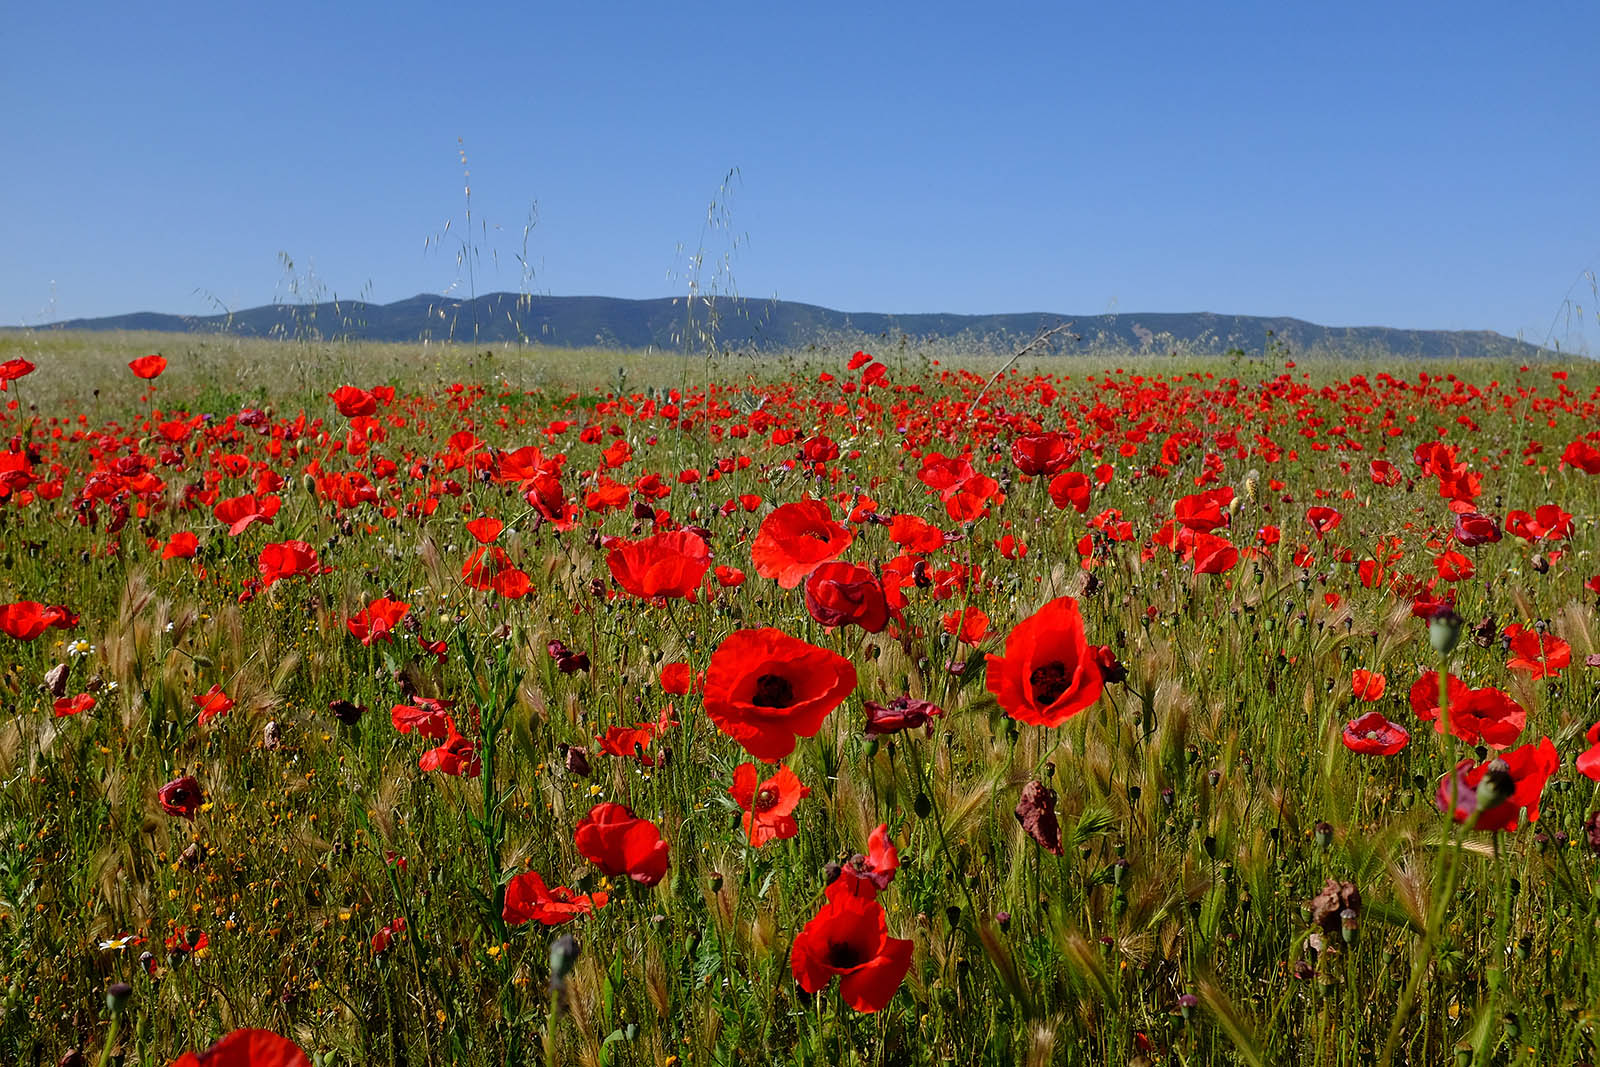 La Mancha Poppies in Springtime